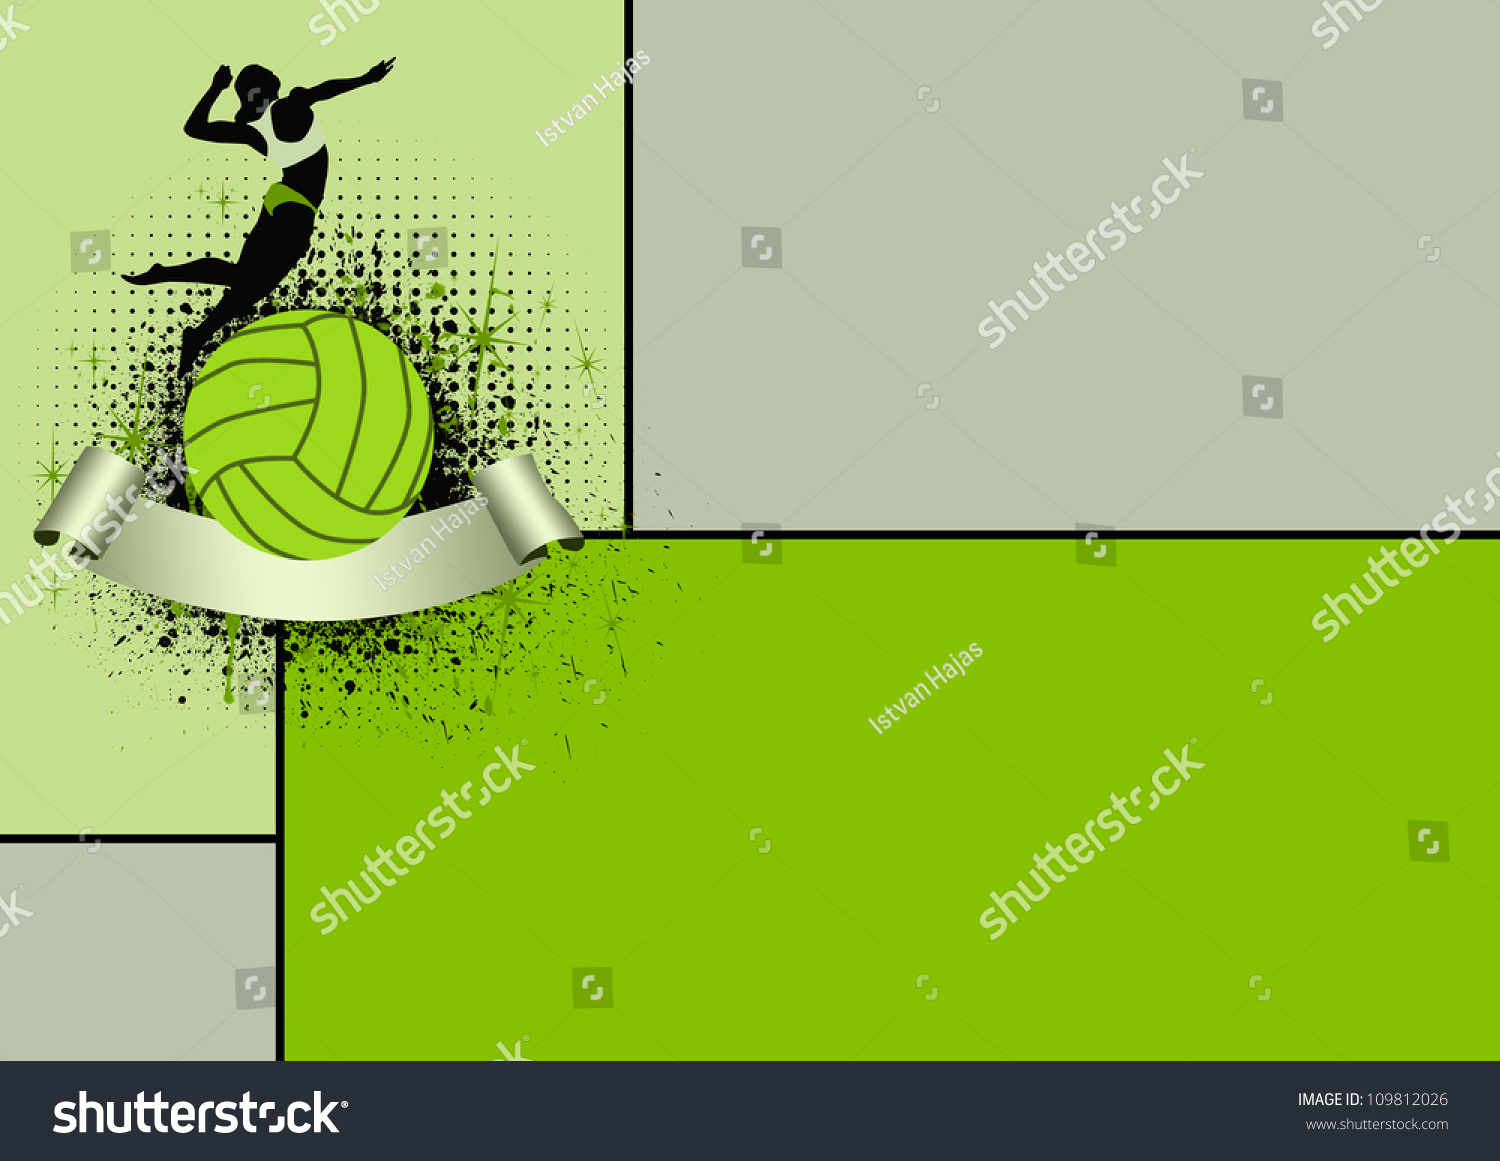 Abstract Grungy Background Volleyball Arrowhead Stock: Abstract Grunge Beach Volleyball Background Space Stock